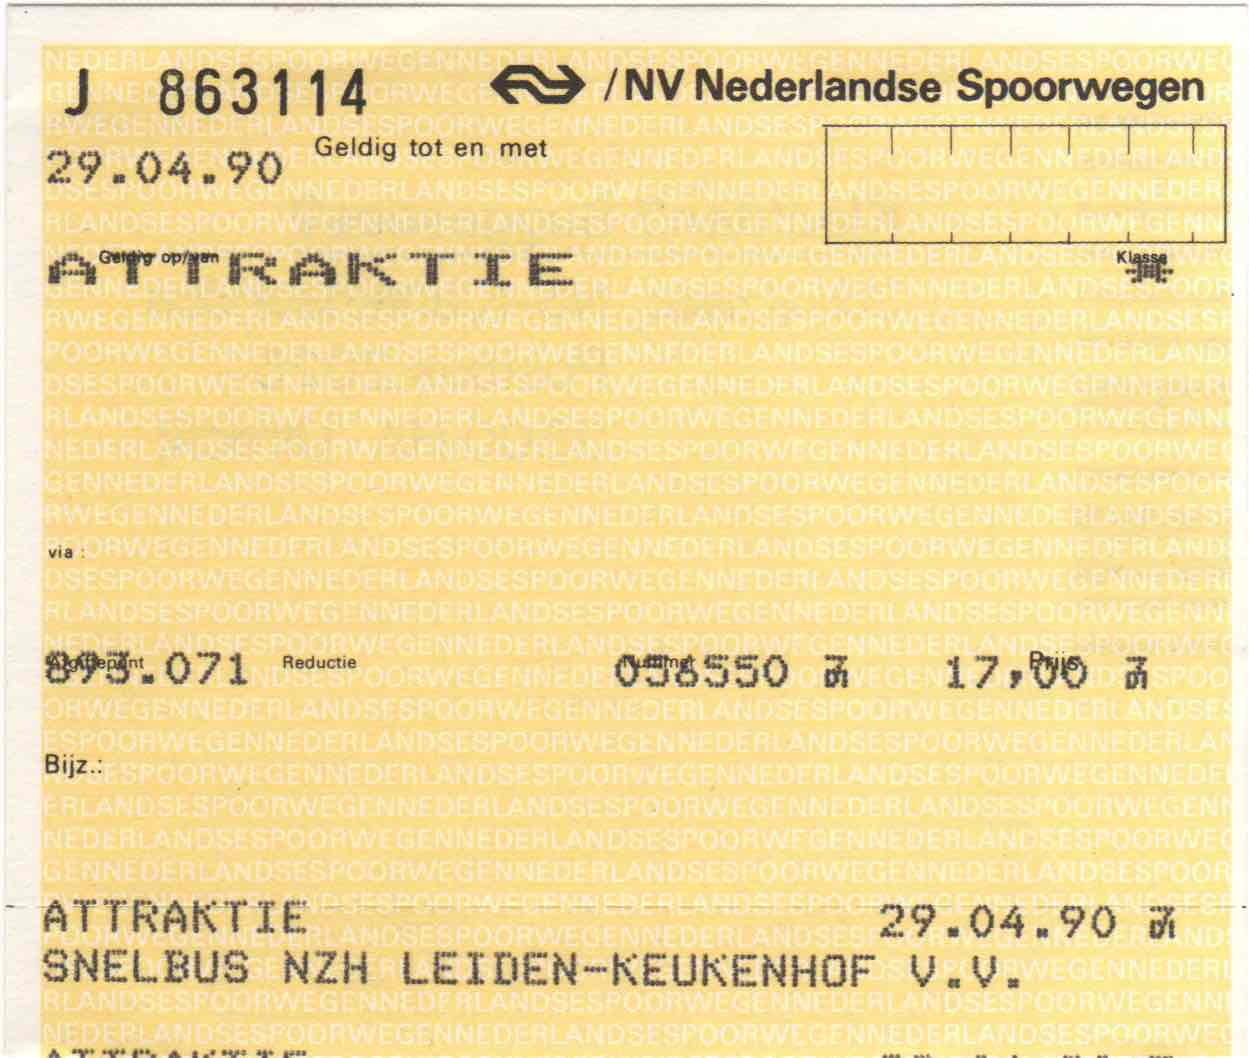 ticket for NZH bus and entrance to Keukenhof (1990)